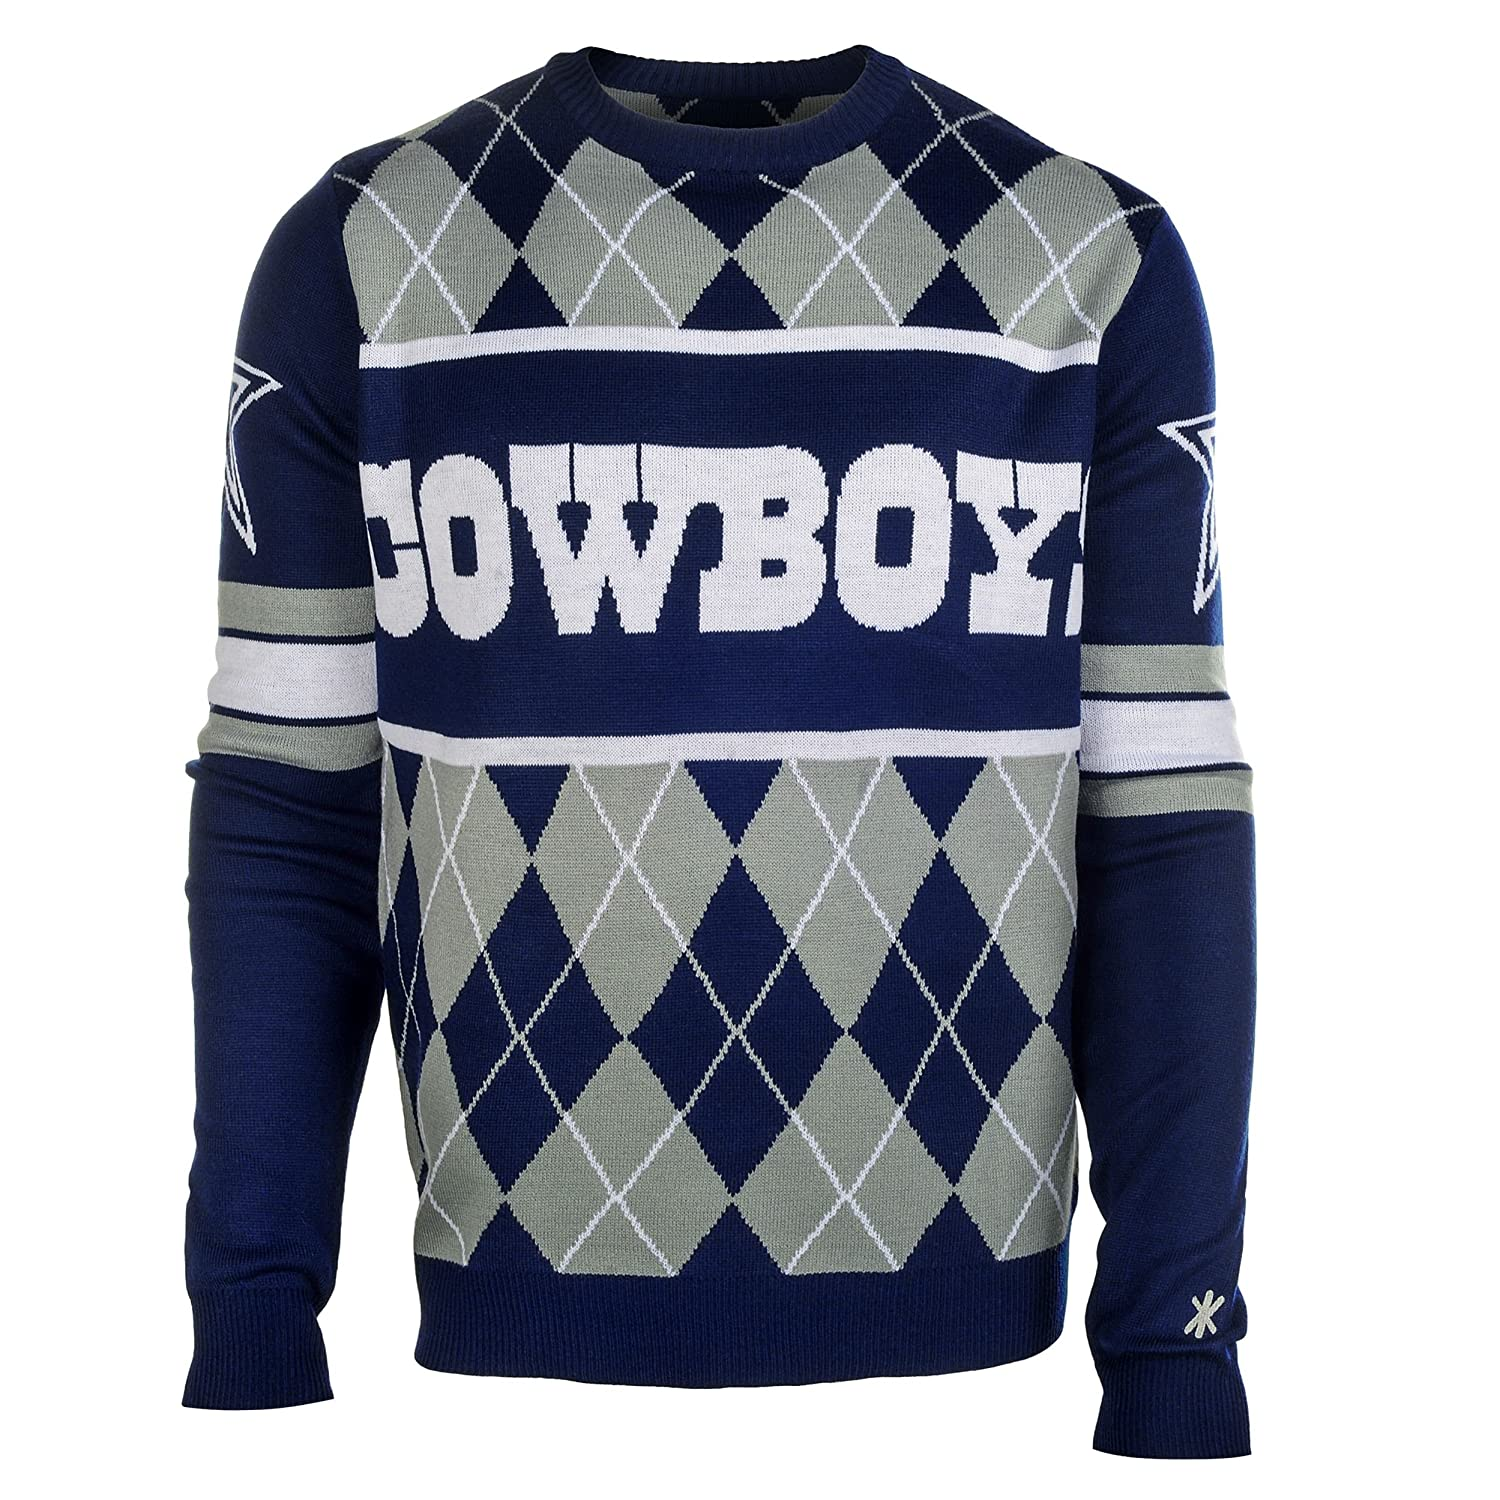 NFL Football Cowboys Big Logo Ugly Sweater